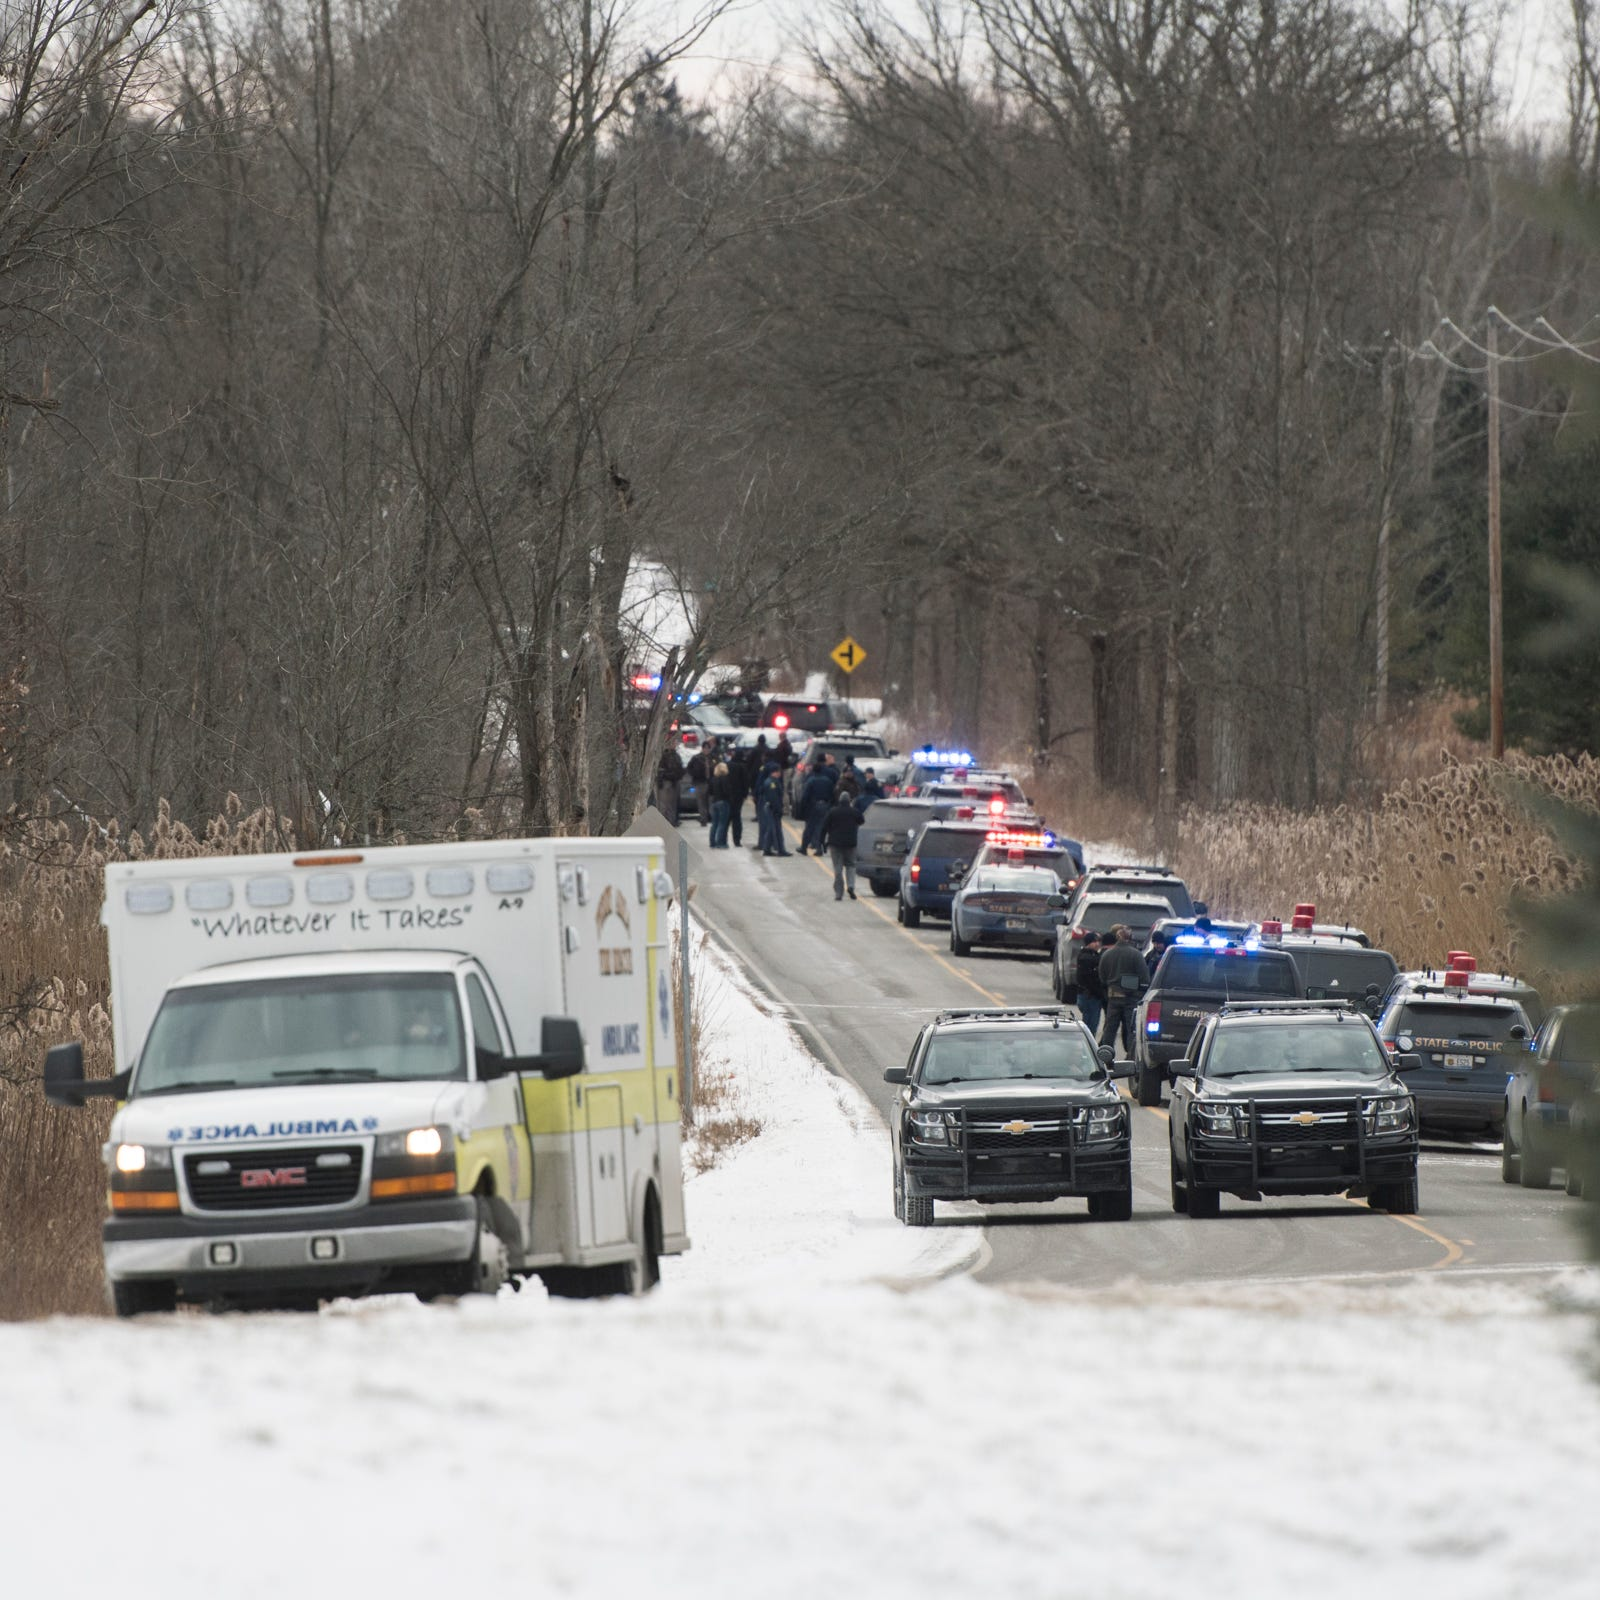 Man wanted in shooting of Saginaw Twp. police officer shot, taken into custody near Lansing